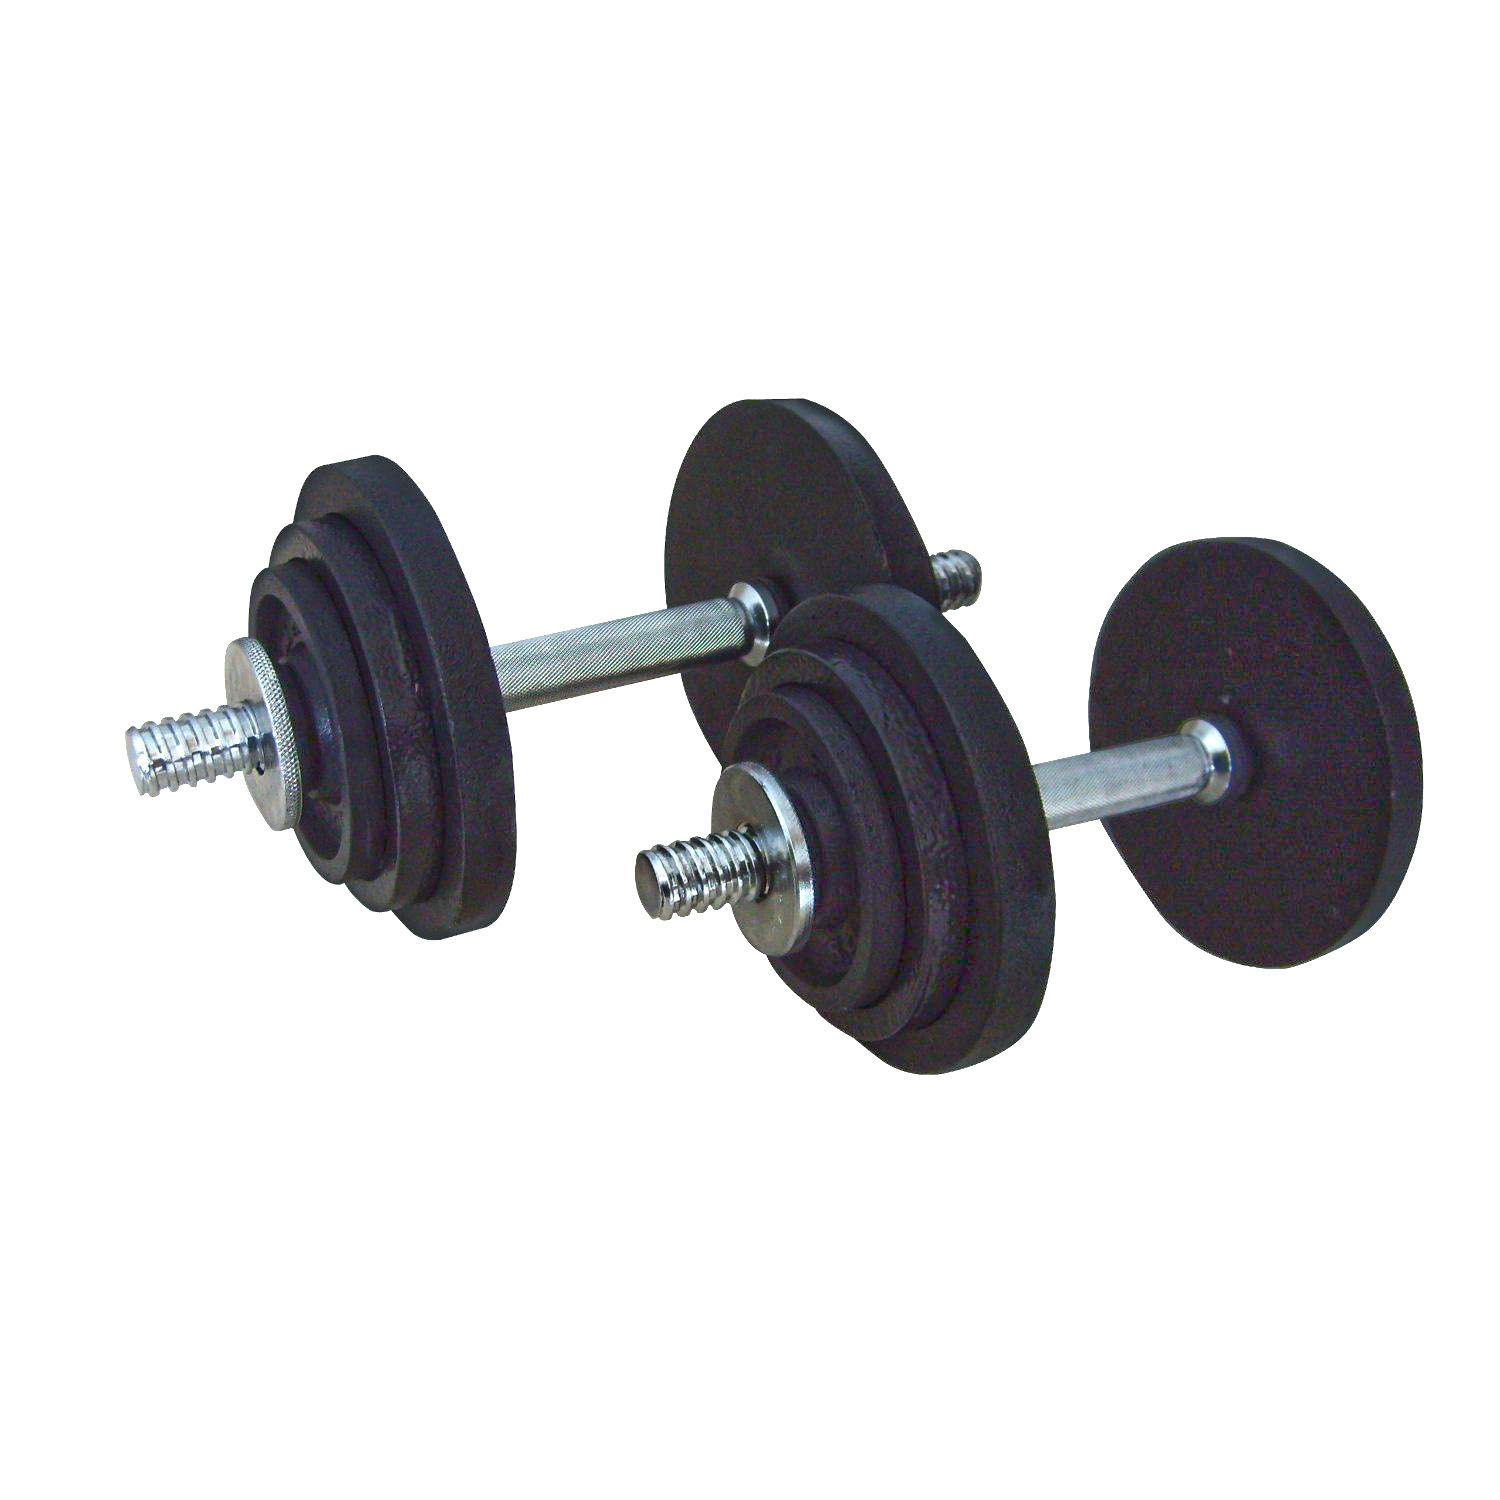 Threaded Dumbbell Handles